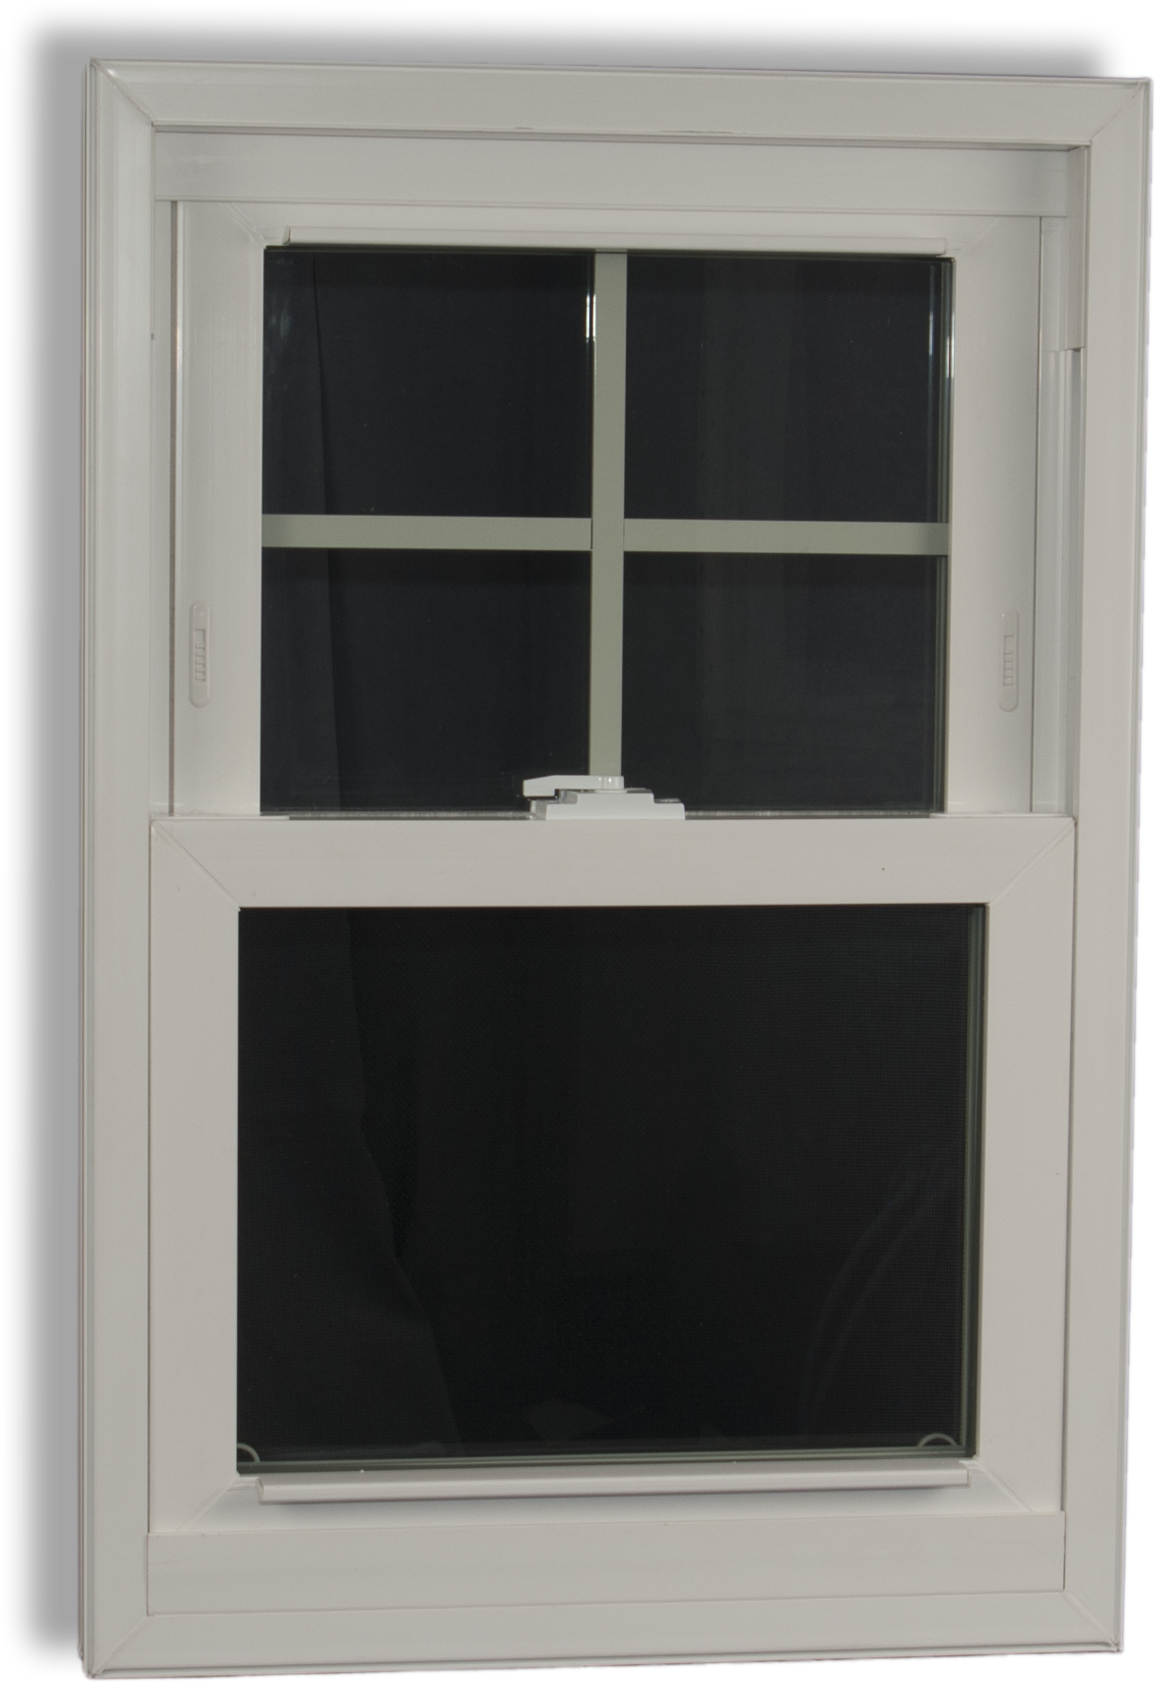 D202547 copy vinyl window manufacturer for Vinyl window manufacturers